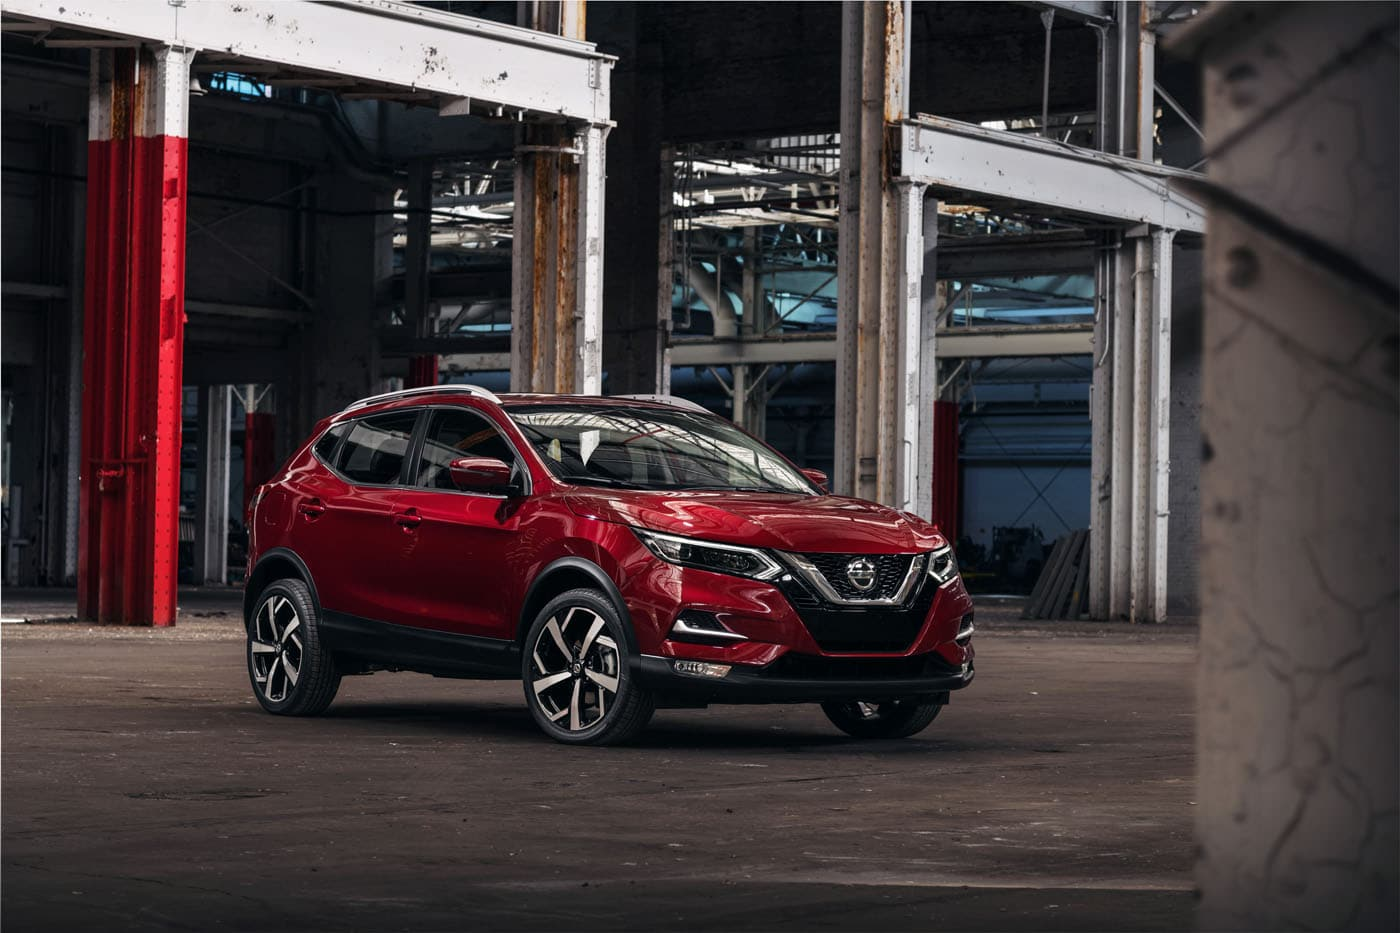 Bose Car Speakers >> 2020 Nissan Qashqai Arrives at Chicago Auto Show - Motor ...